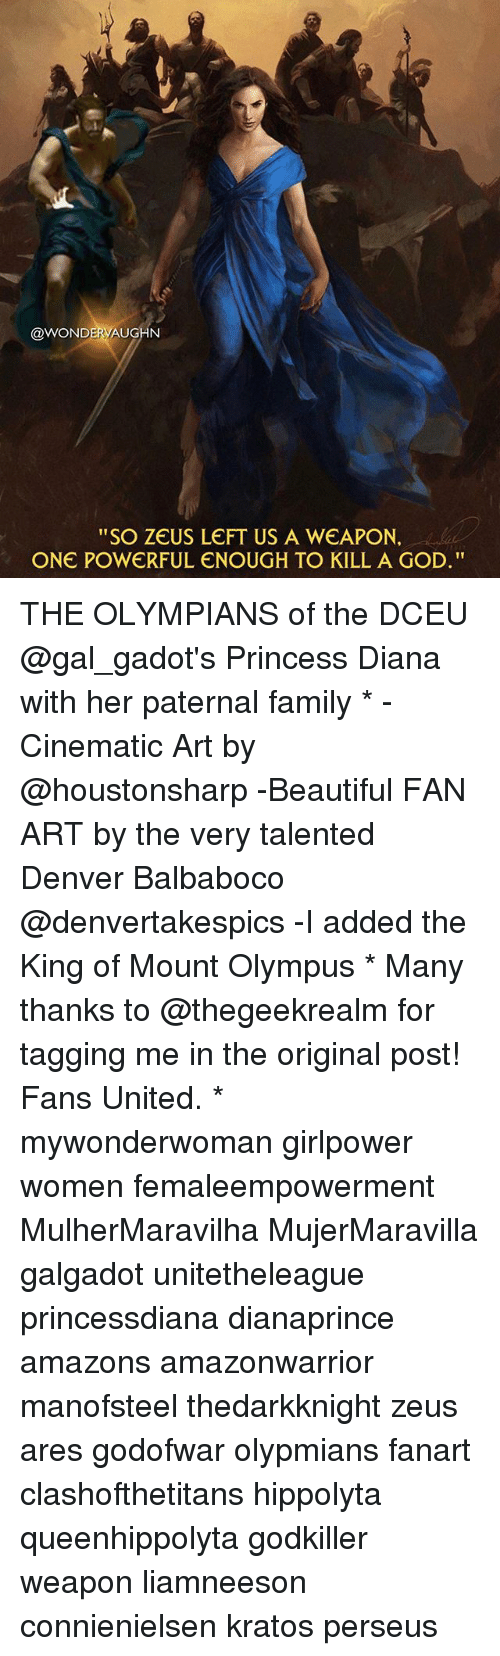 """kratos: @WONDERVAUGHN  """"SO ZEUS LEFT US A WEAPON.  ONE POWERFUL ENOUGH TO KILL A GOD"""" THE OLYMPIANS of the DCEU @gal_gadot's Princess Diana with her paternal family * -Cinematic Art by @houstonsharp -Beautiful FAN ART by the very talented Denver Balbaboco @denvertakespics -I added the King of Mount Olympus * Many thanks to @thegeekrealm for tagging me in the original post! Fans United. * mywonderwoman girlpower women femaleempowerment MulherMaravilha MujerMaravilla galgadot unitetheleague princessdiana dianaprince amazons amazonwarrior manofsteel thedarkknight zeus ares godofwar olypmians fanart clashofthetitans hippolyta queenhippolyta godkiller weapon liamneeson connienielsen kratos perseus"""